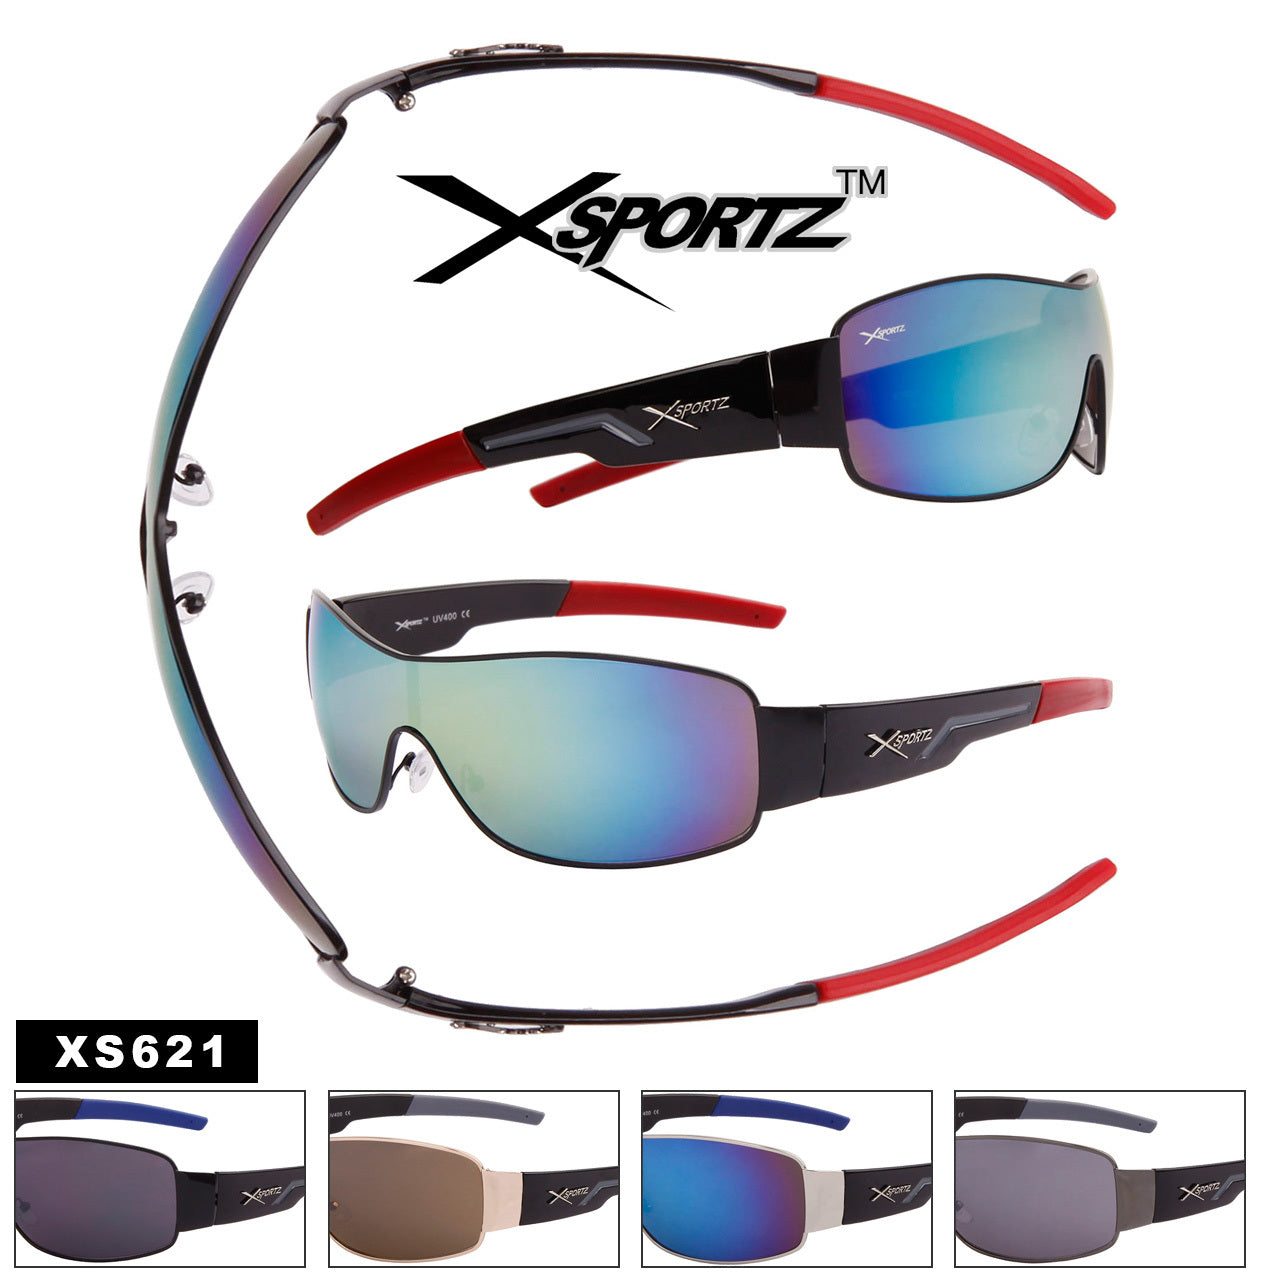 XS621 XSPORTZ™ Single Piece Lens - Amanda's Sunglasses and More